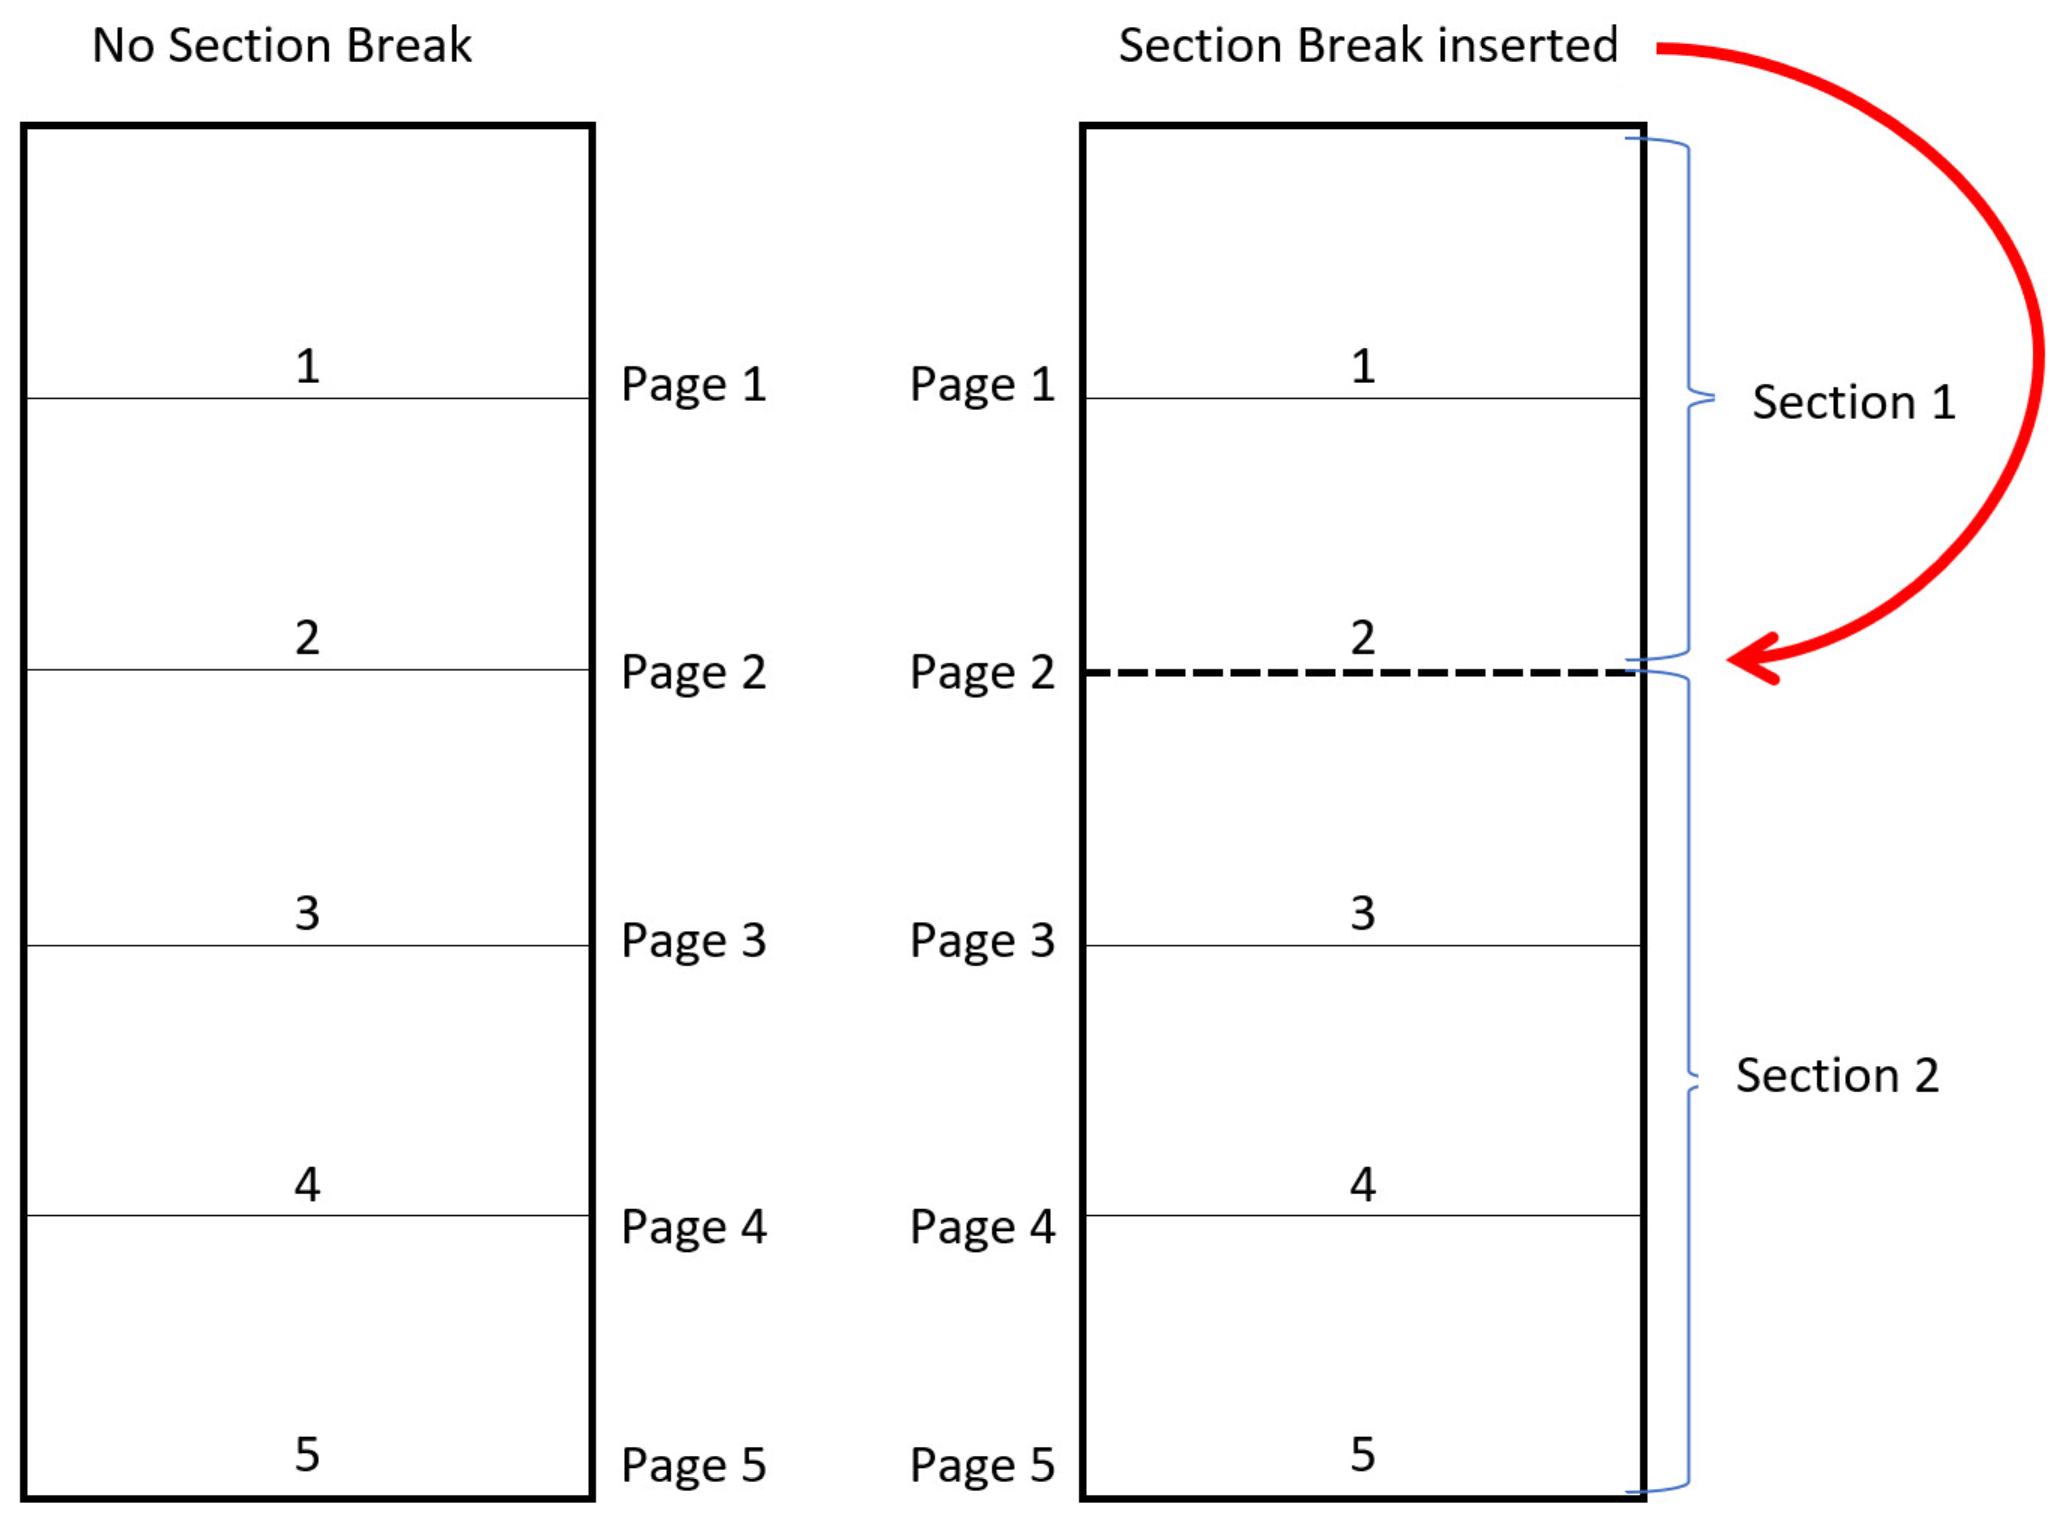 Example of two Word documents - one with 1 section, the other with two sections